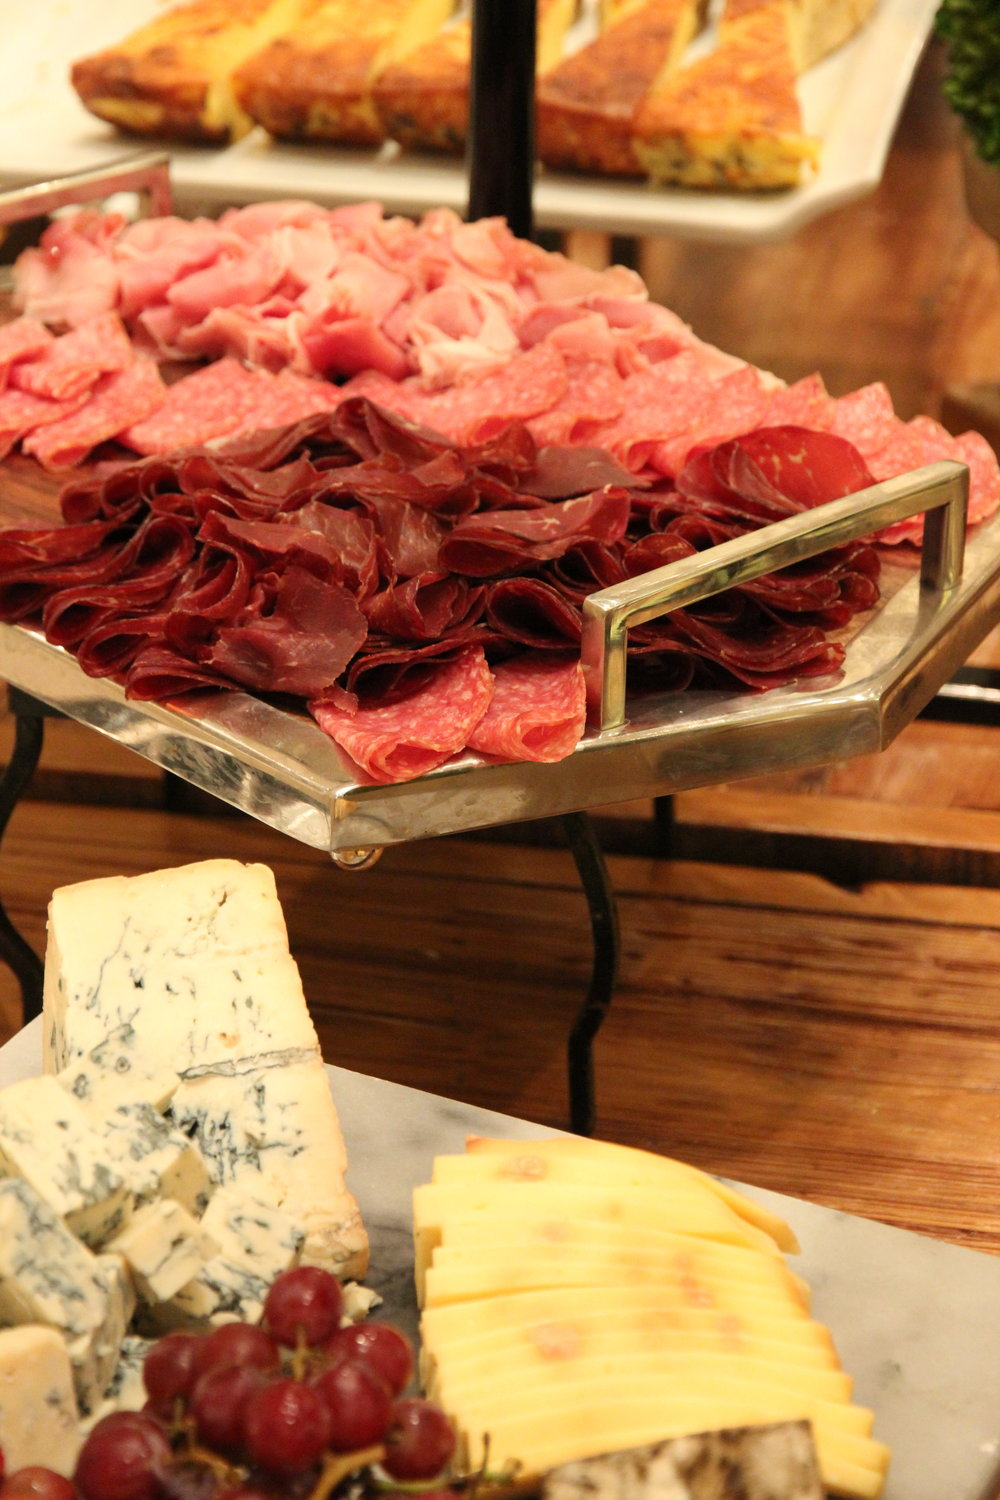 Charcuterie and cheese at the National Gallery of Art Garden Cafe brunch. (Photo compliments the National Gallery of Art)